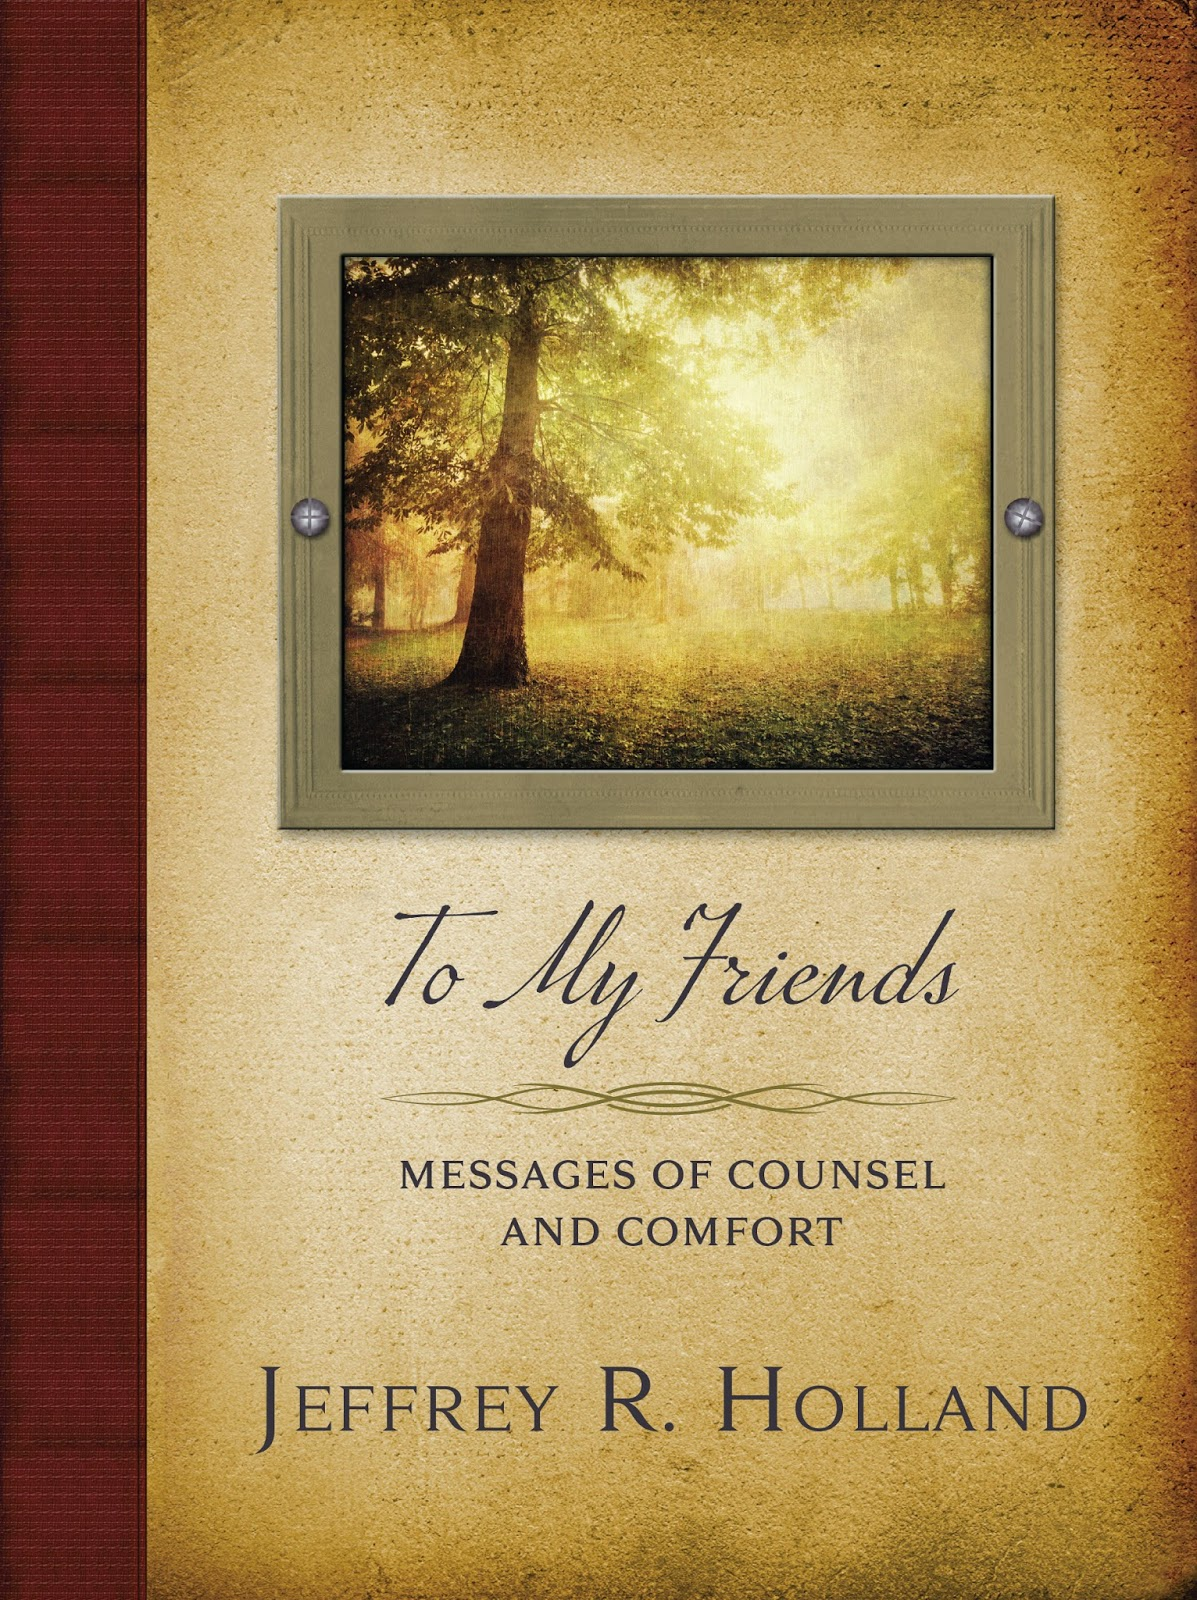 LDS, Elder Holland, To My Friends, General Conference